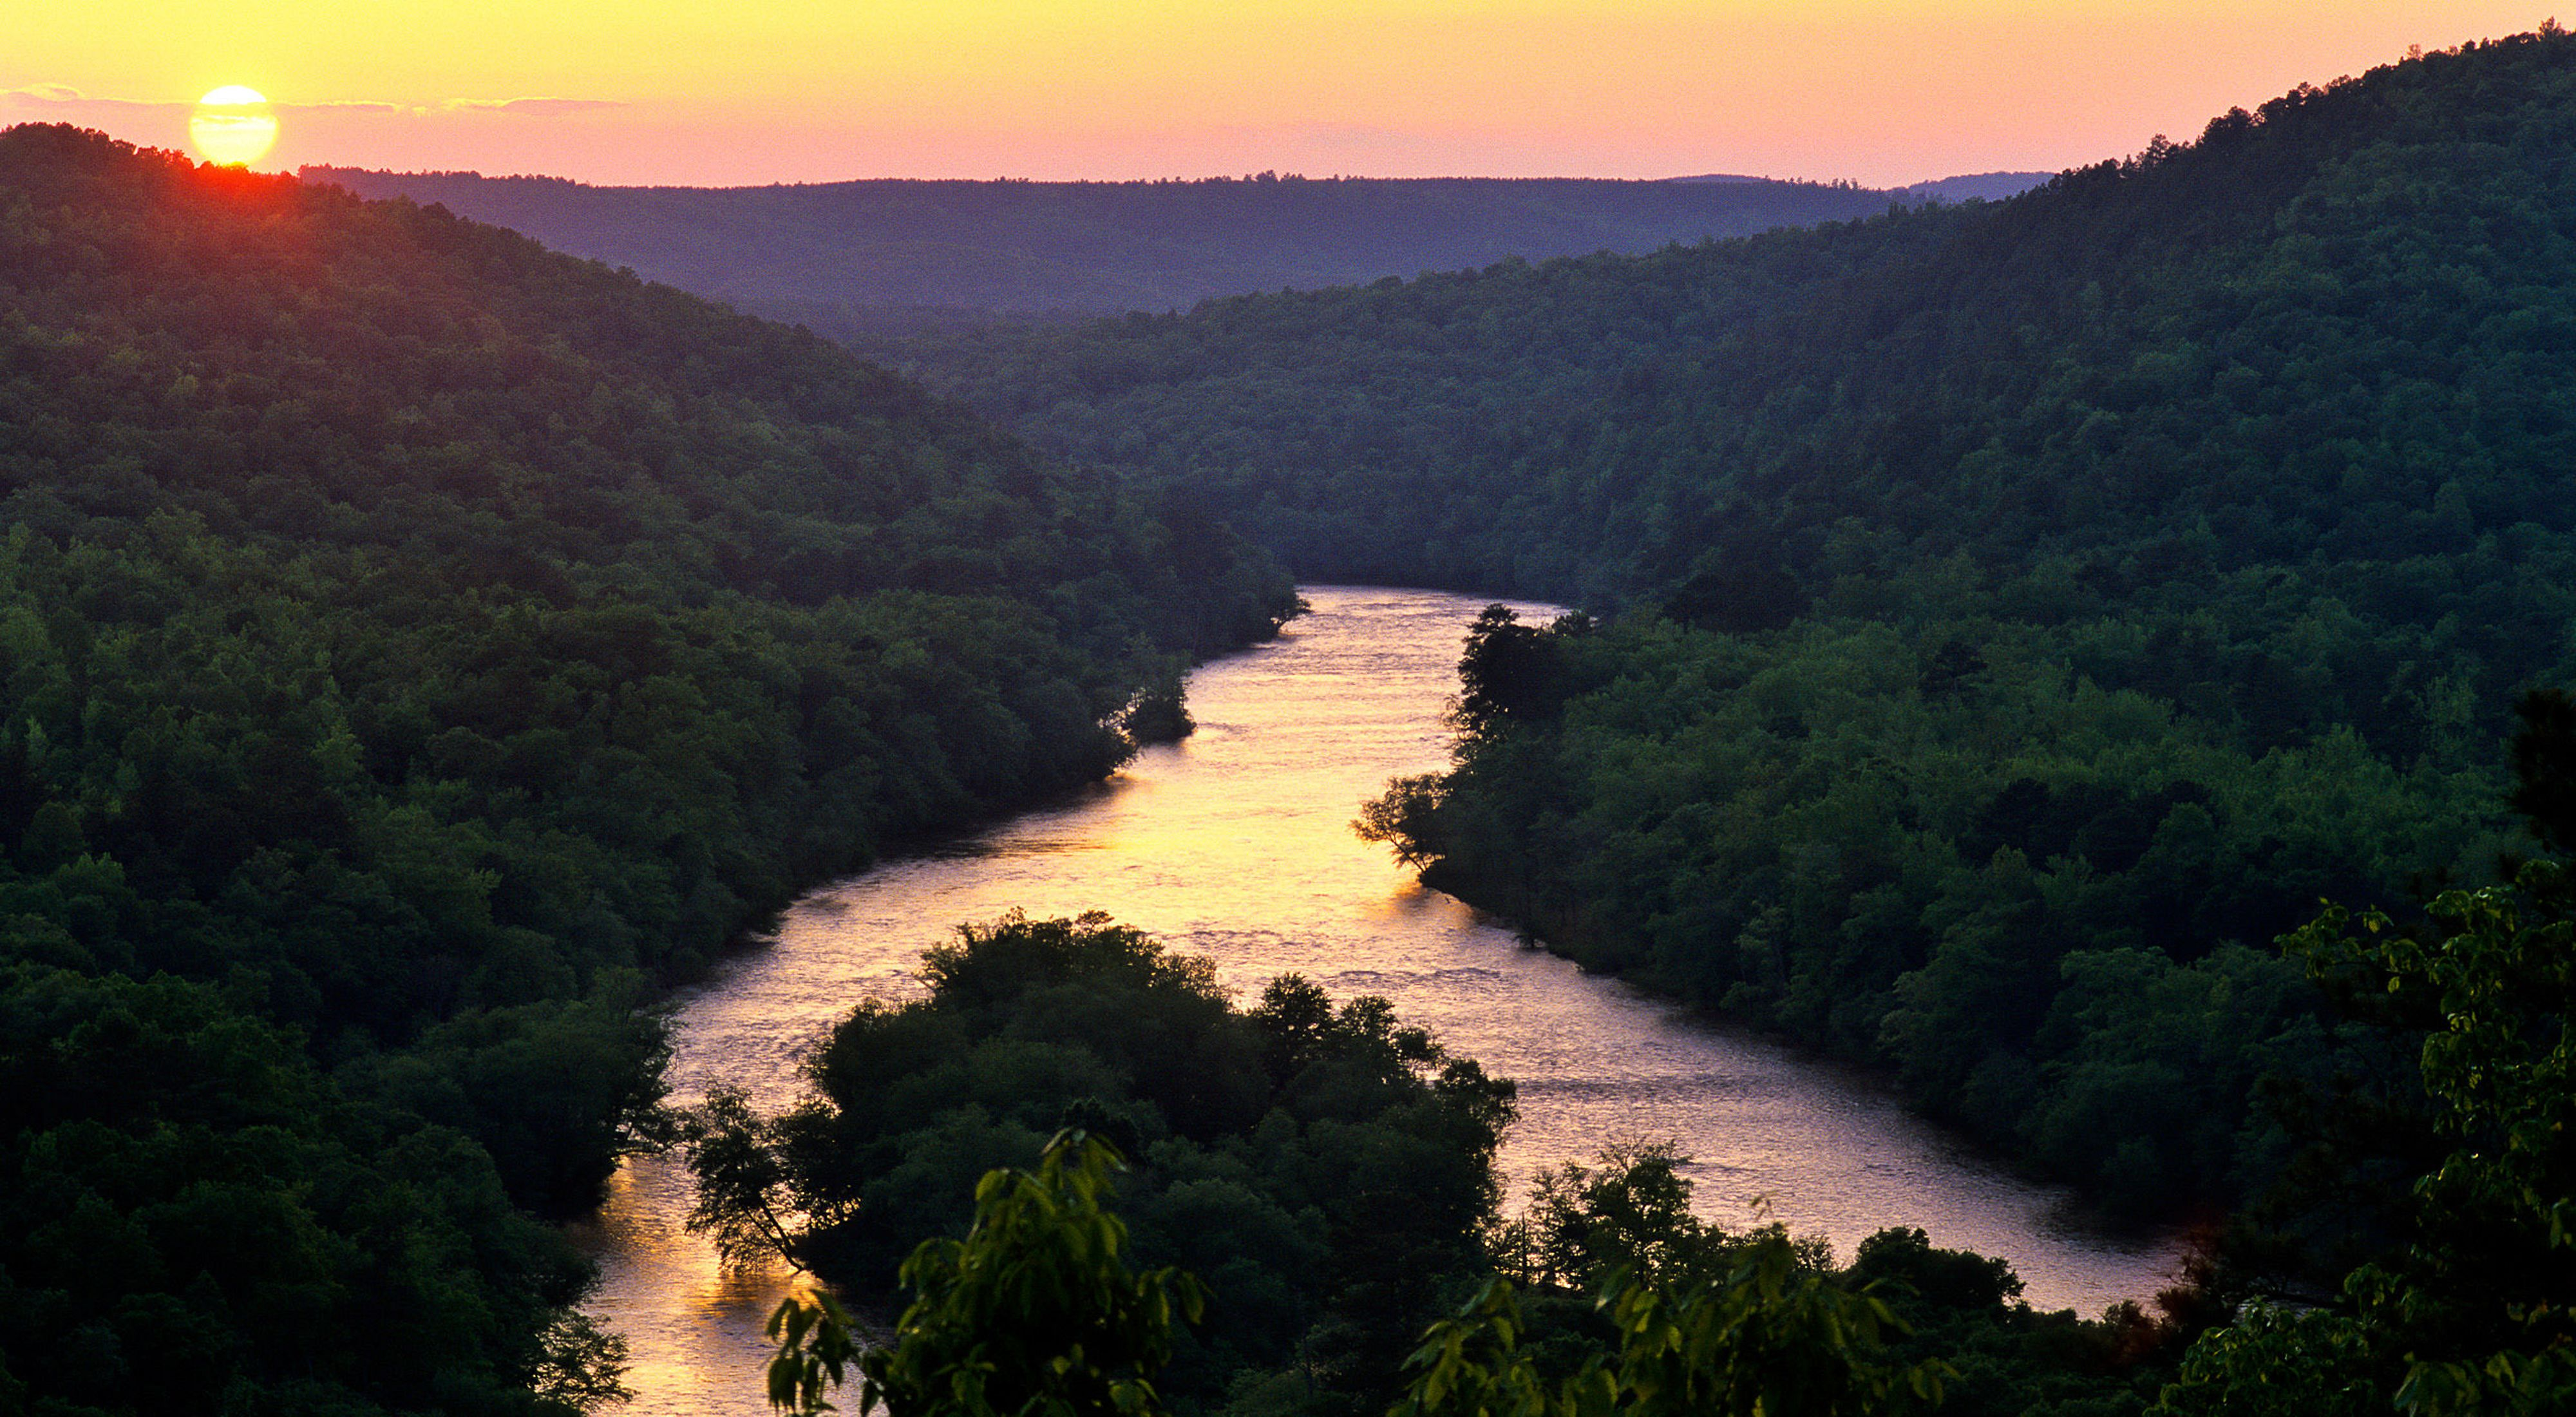 Sunset over the Flint River, Georgia.